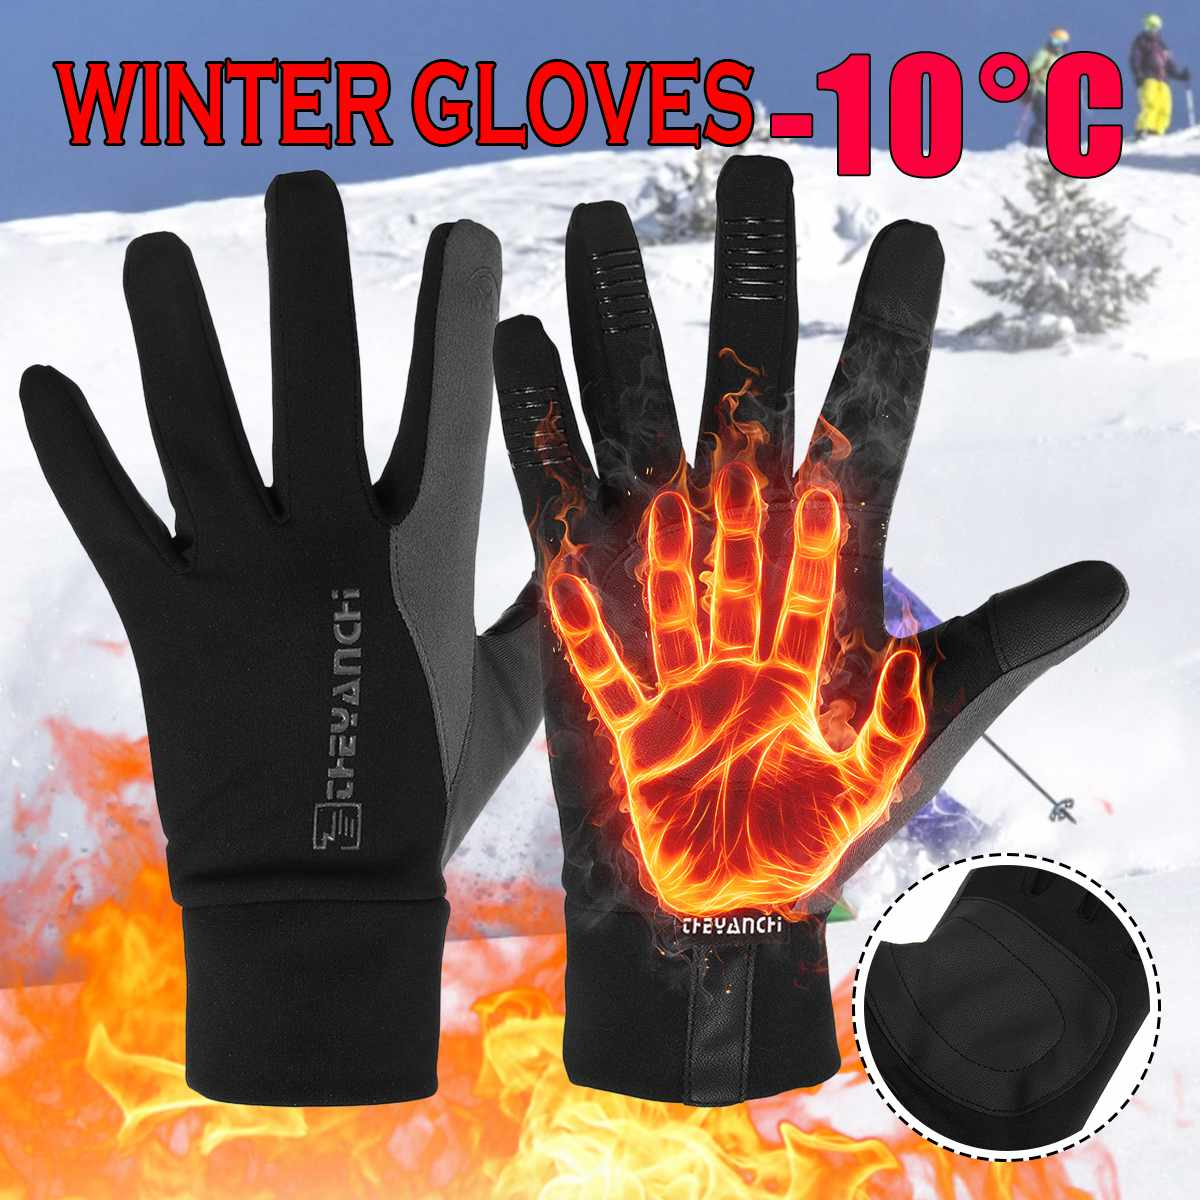 Heated Waterproof Winter Gloves Fluff Warm Gloves Touch Screen Anti Slip Sport Riding Cycling Skiing Gloves Unisex